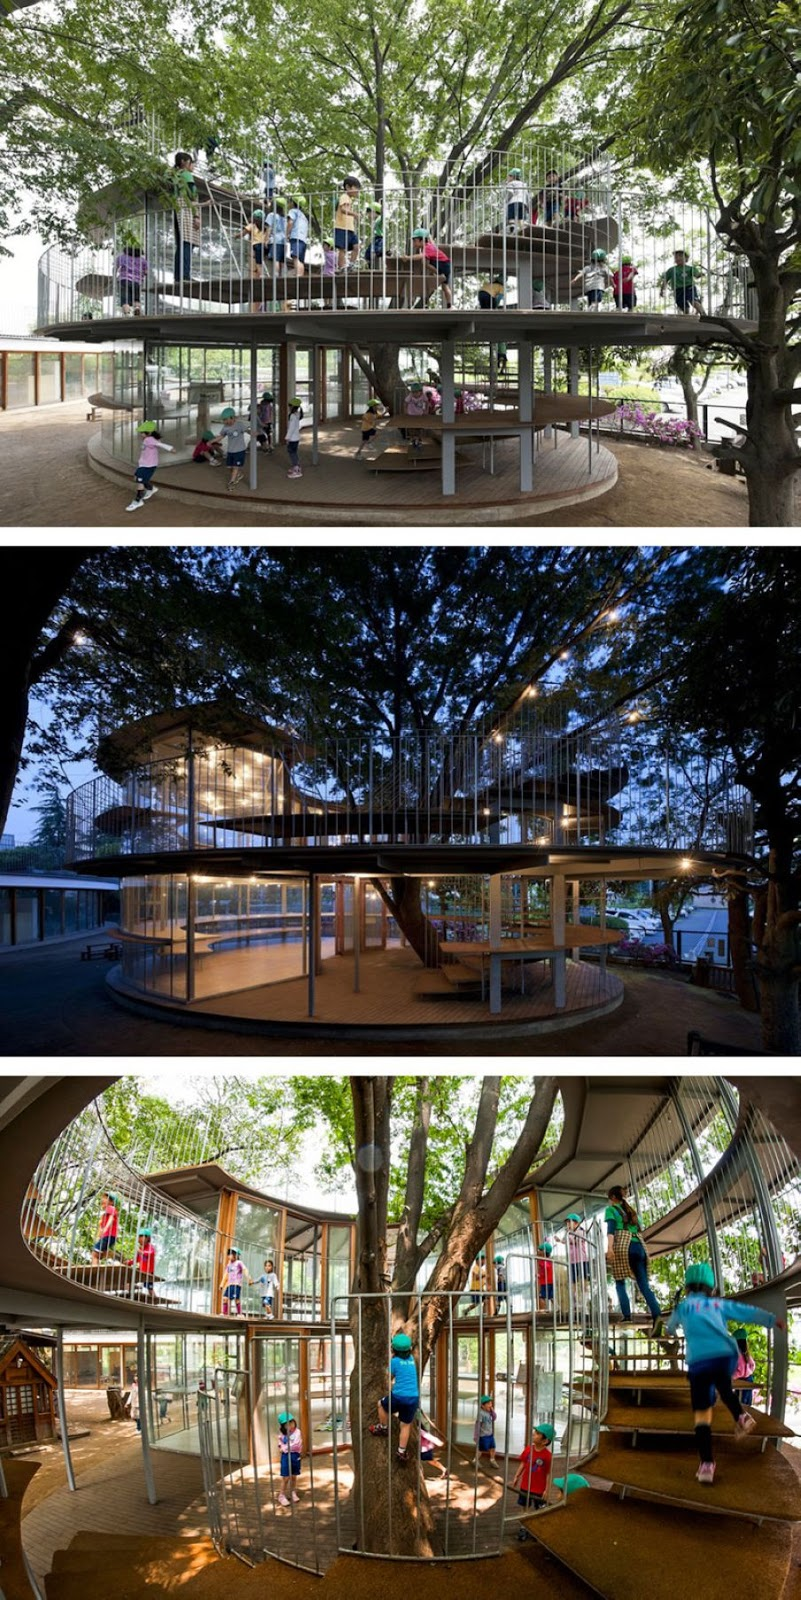 Incredible Architectural Examples of Respect for Nature (16 Pics)